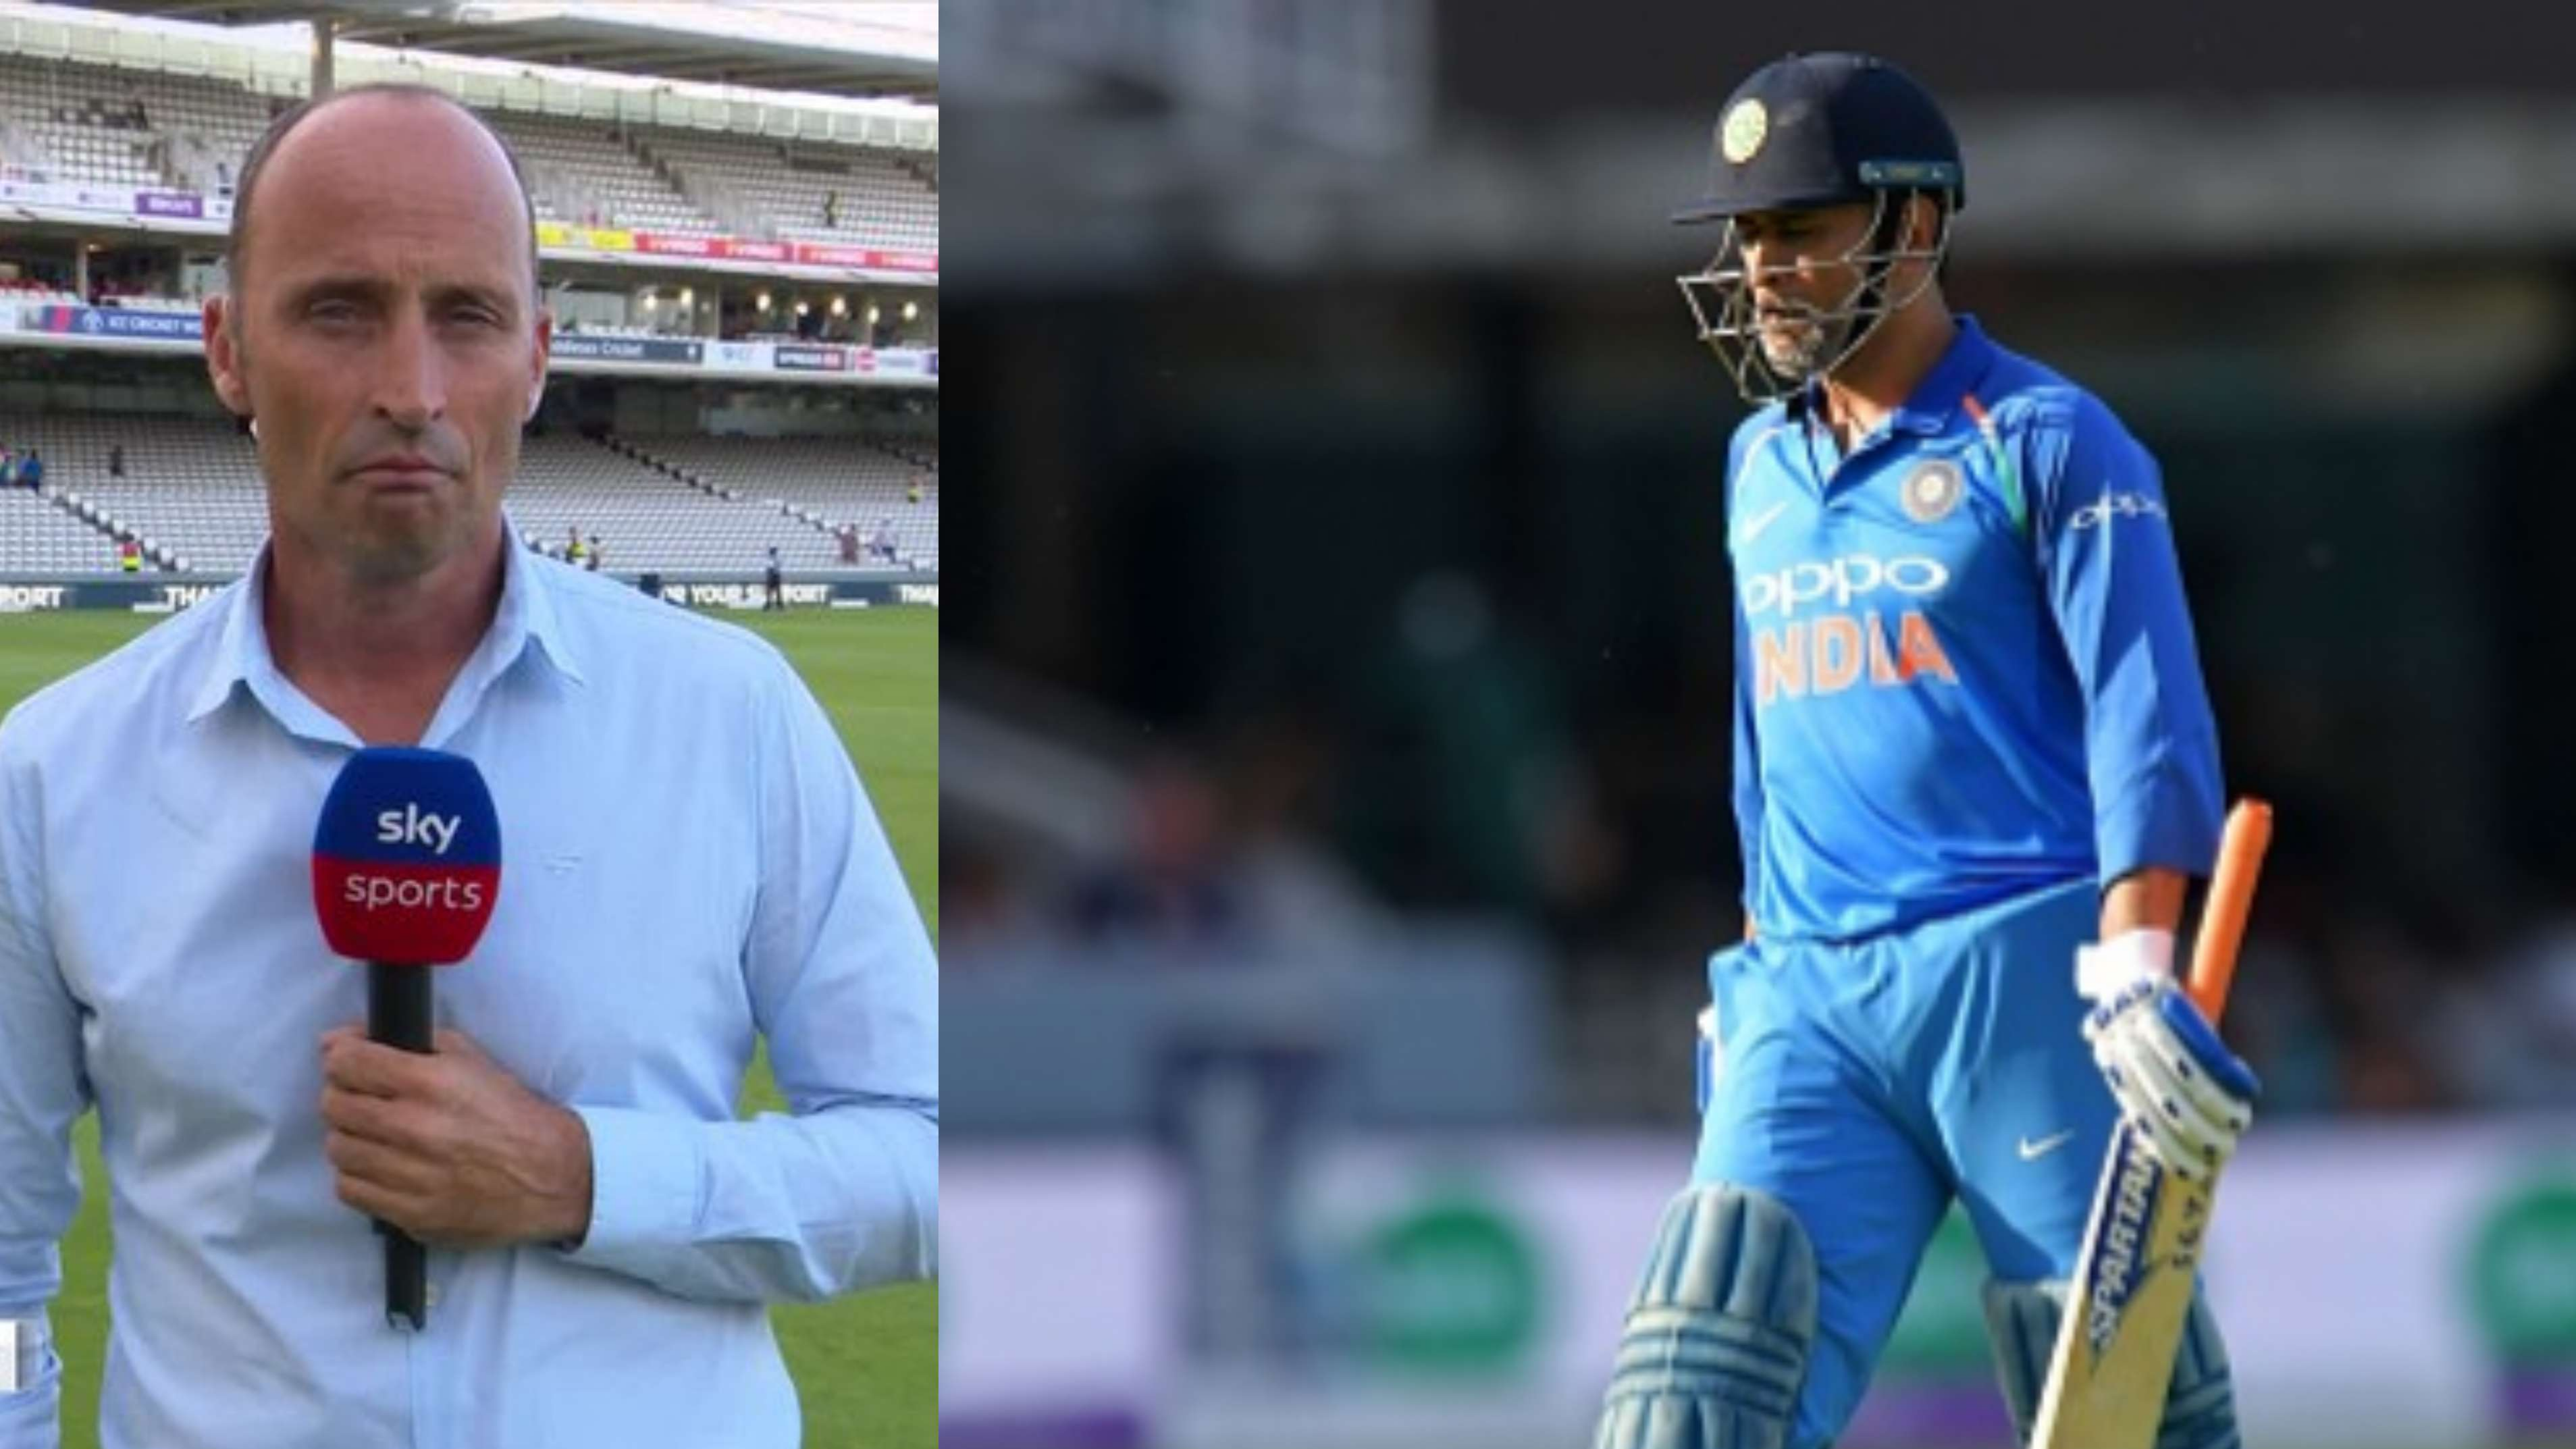 ENG vs IND 2018: Nasser Hussain calls MS Dhoni's innings in the second ODI a very odd one